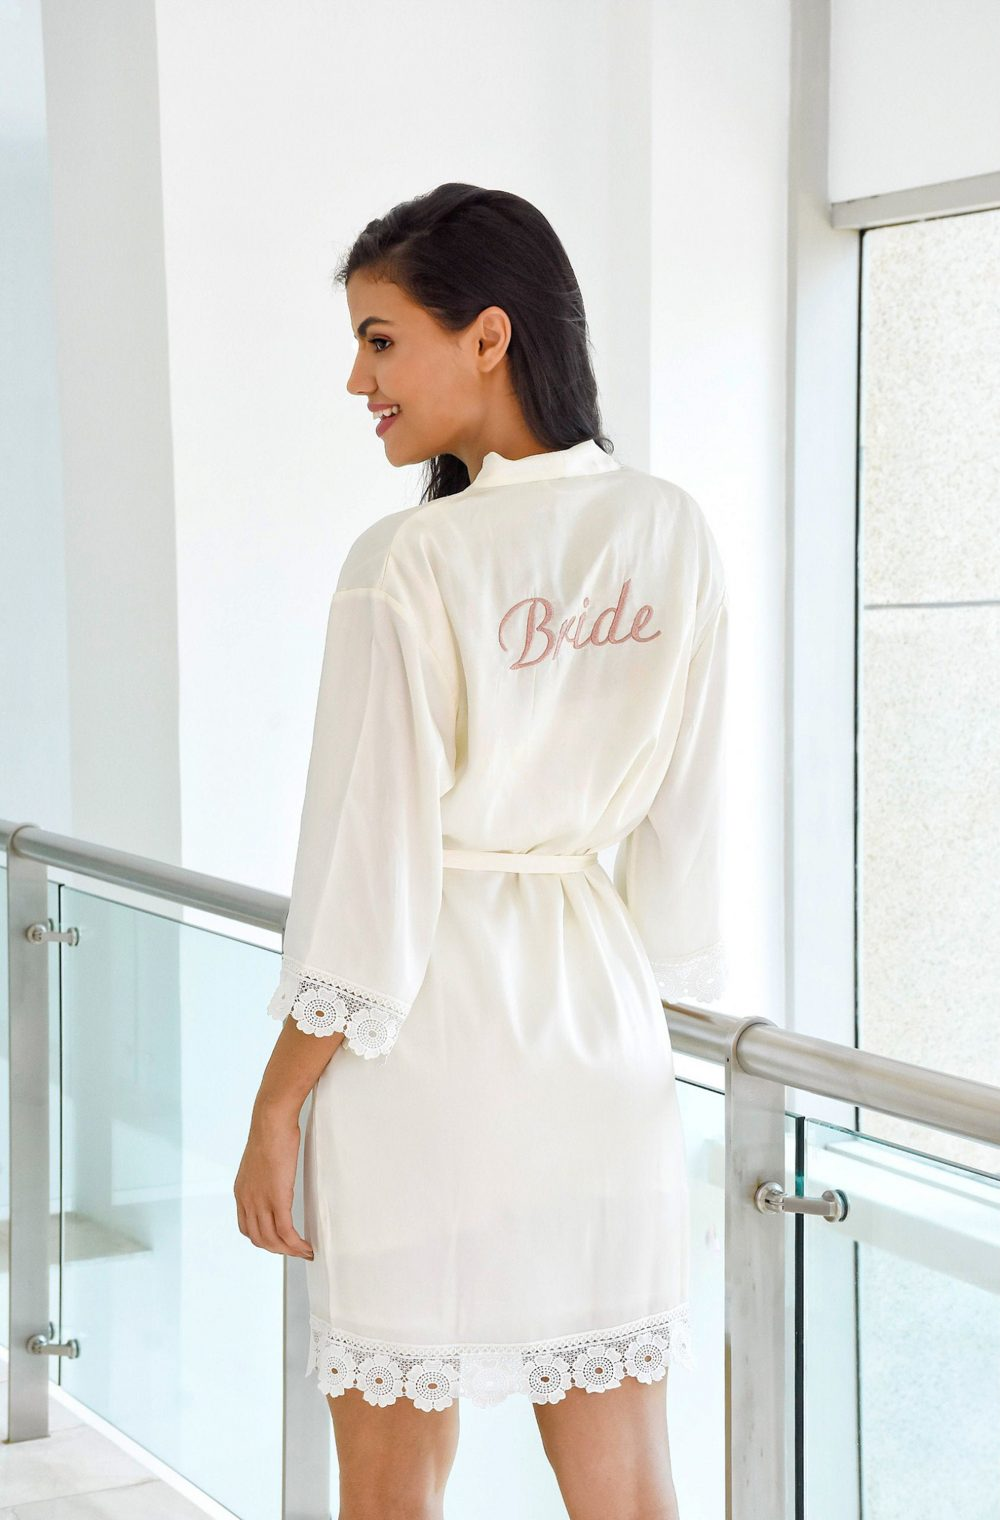 Lace Bridal Robe // Bridesmaid Robes Bride Party Gifts Satin Larissa